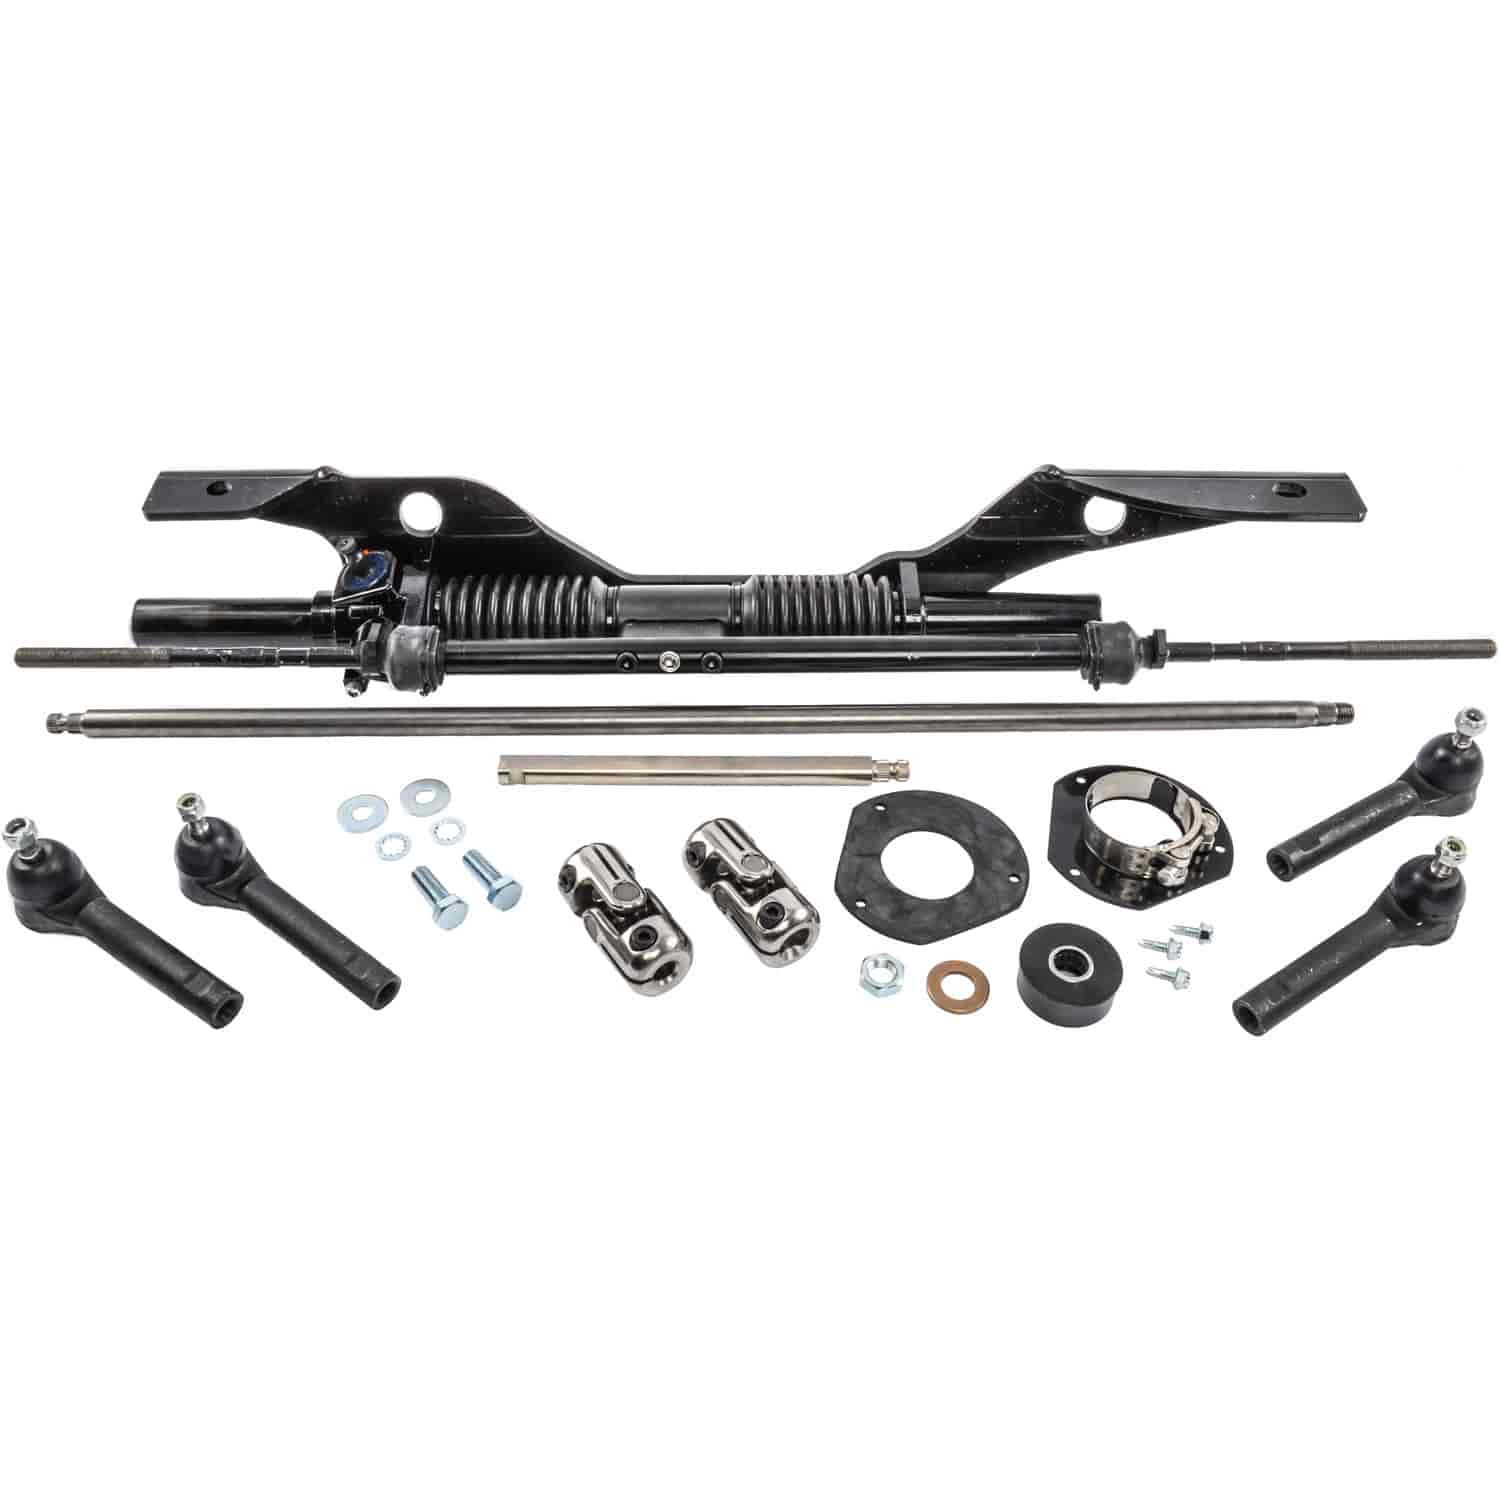 Unisteer 01 Manual Rack And Pinion Kit 66